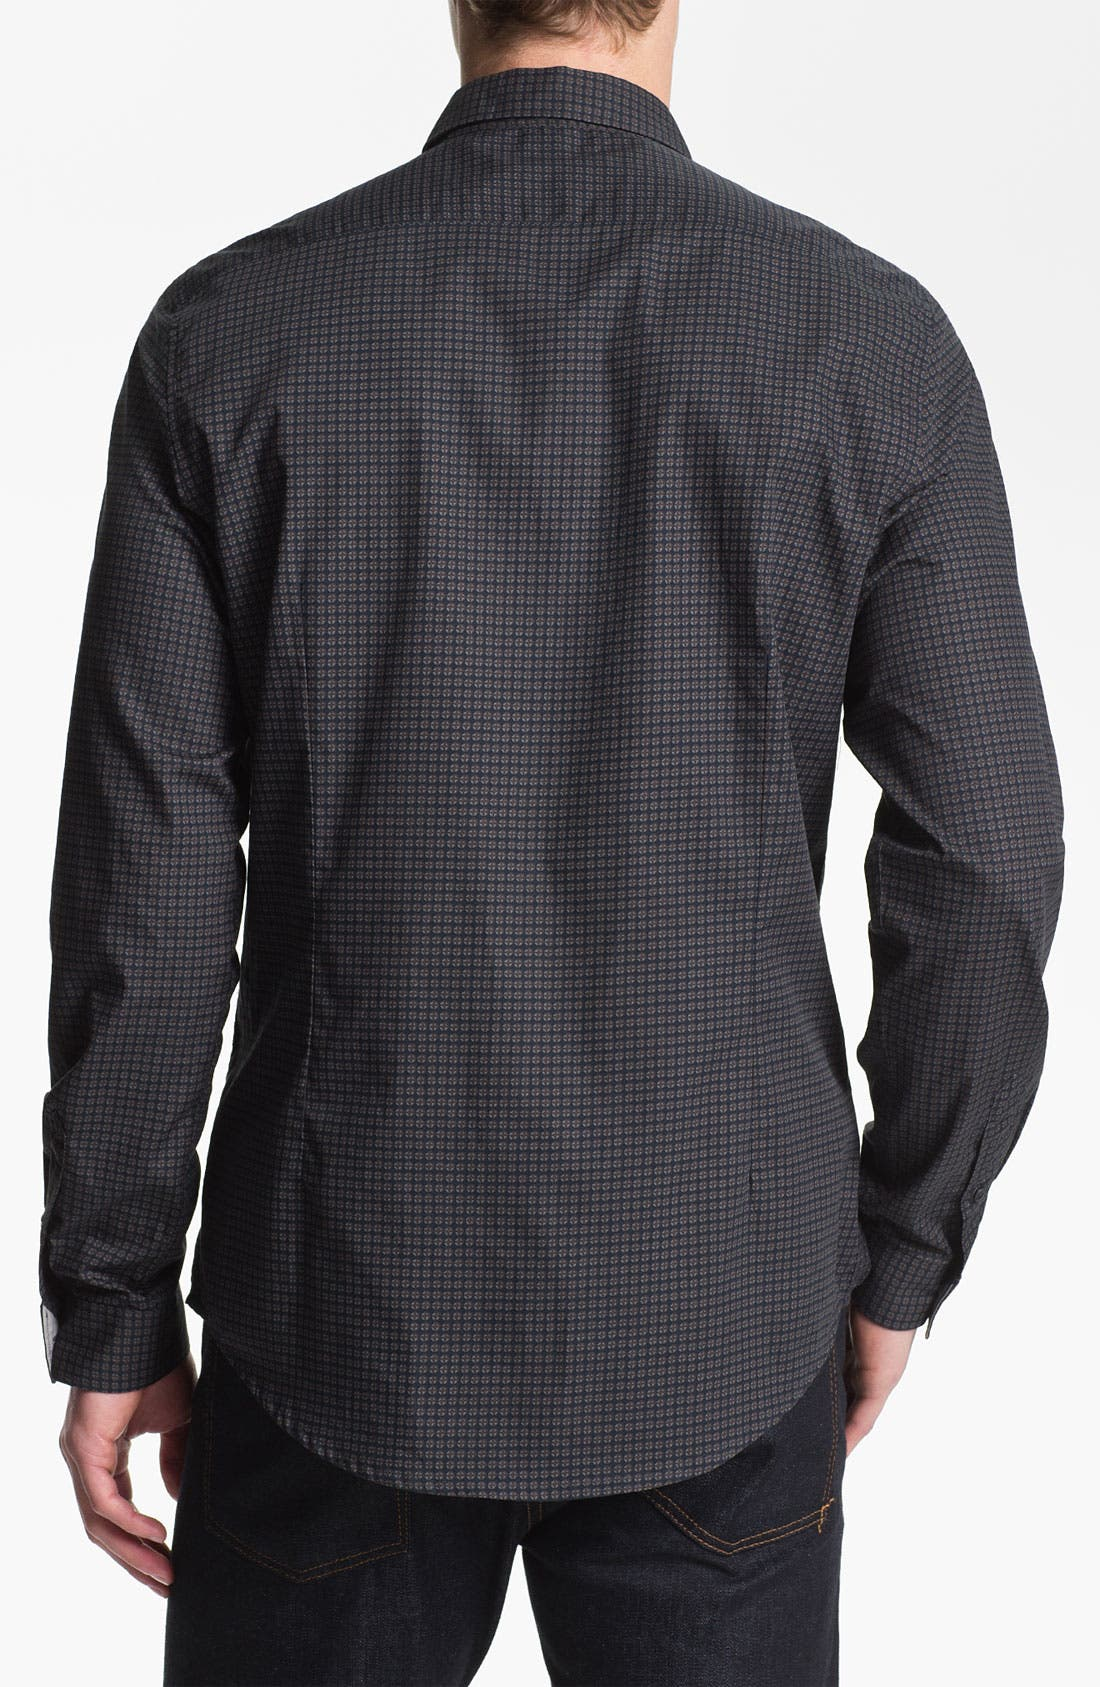 Alternate Image 2  - Ben Sherman 'Kensington' Woven Shirt